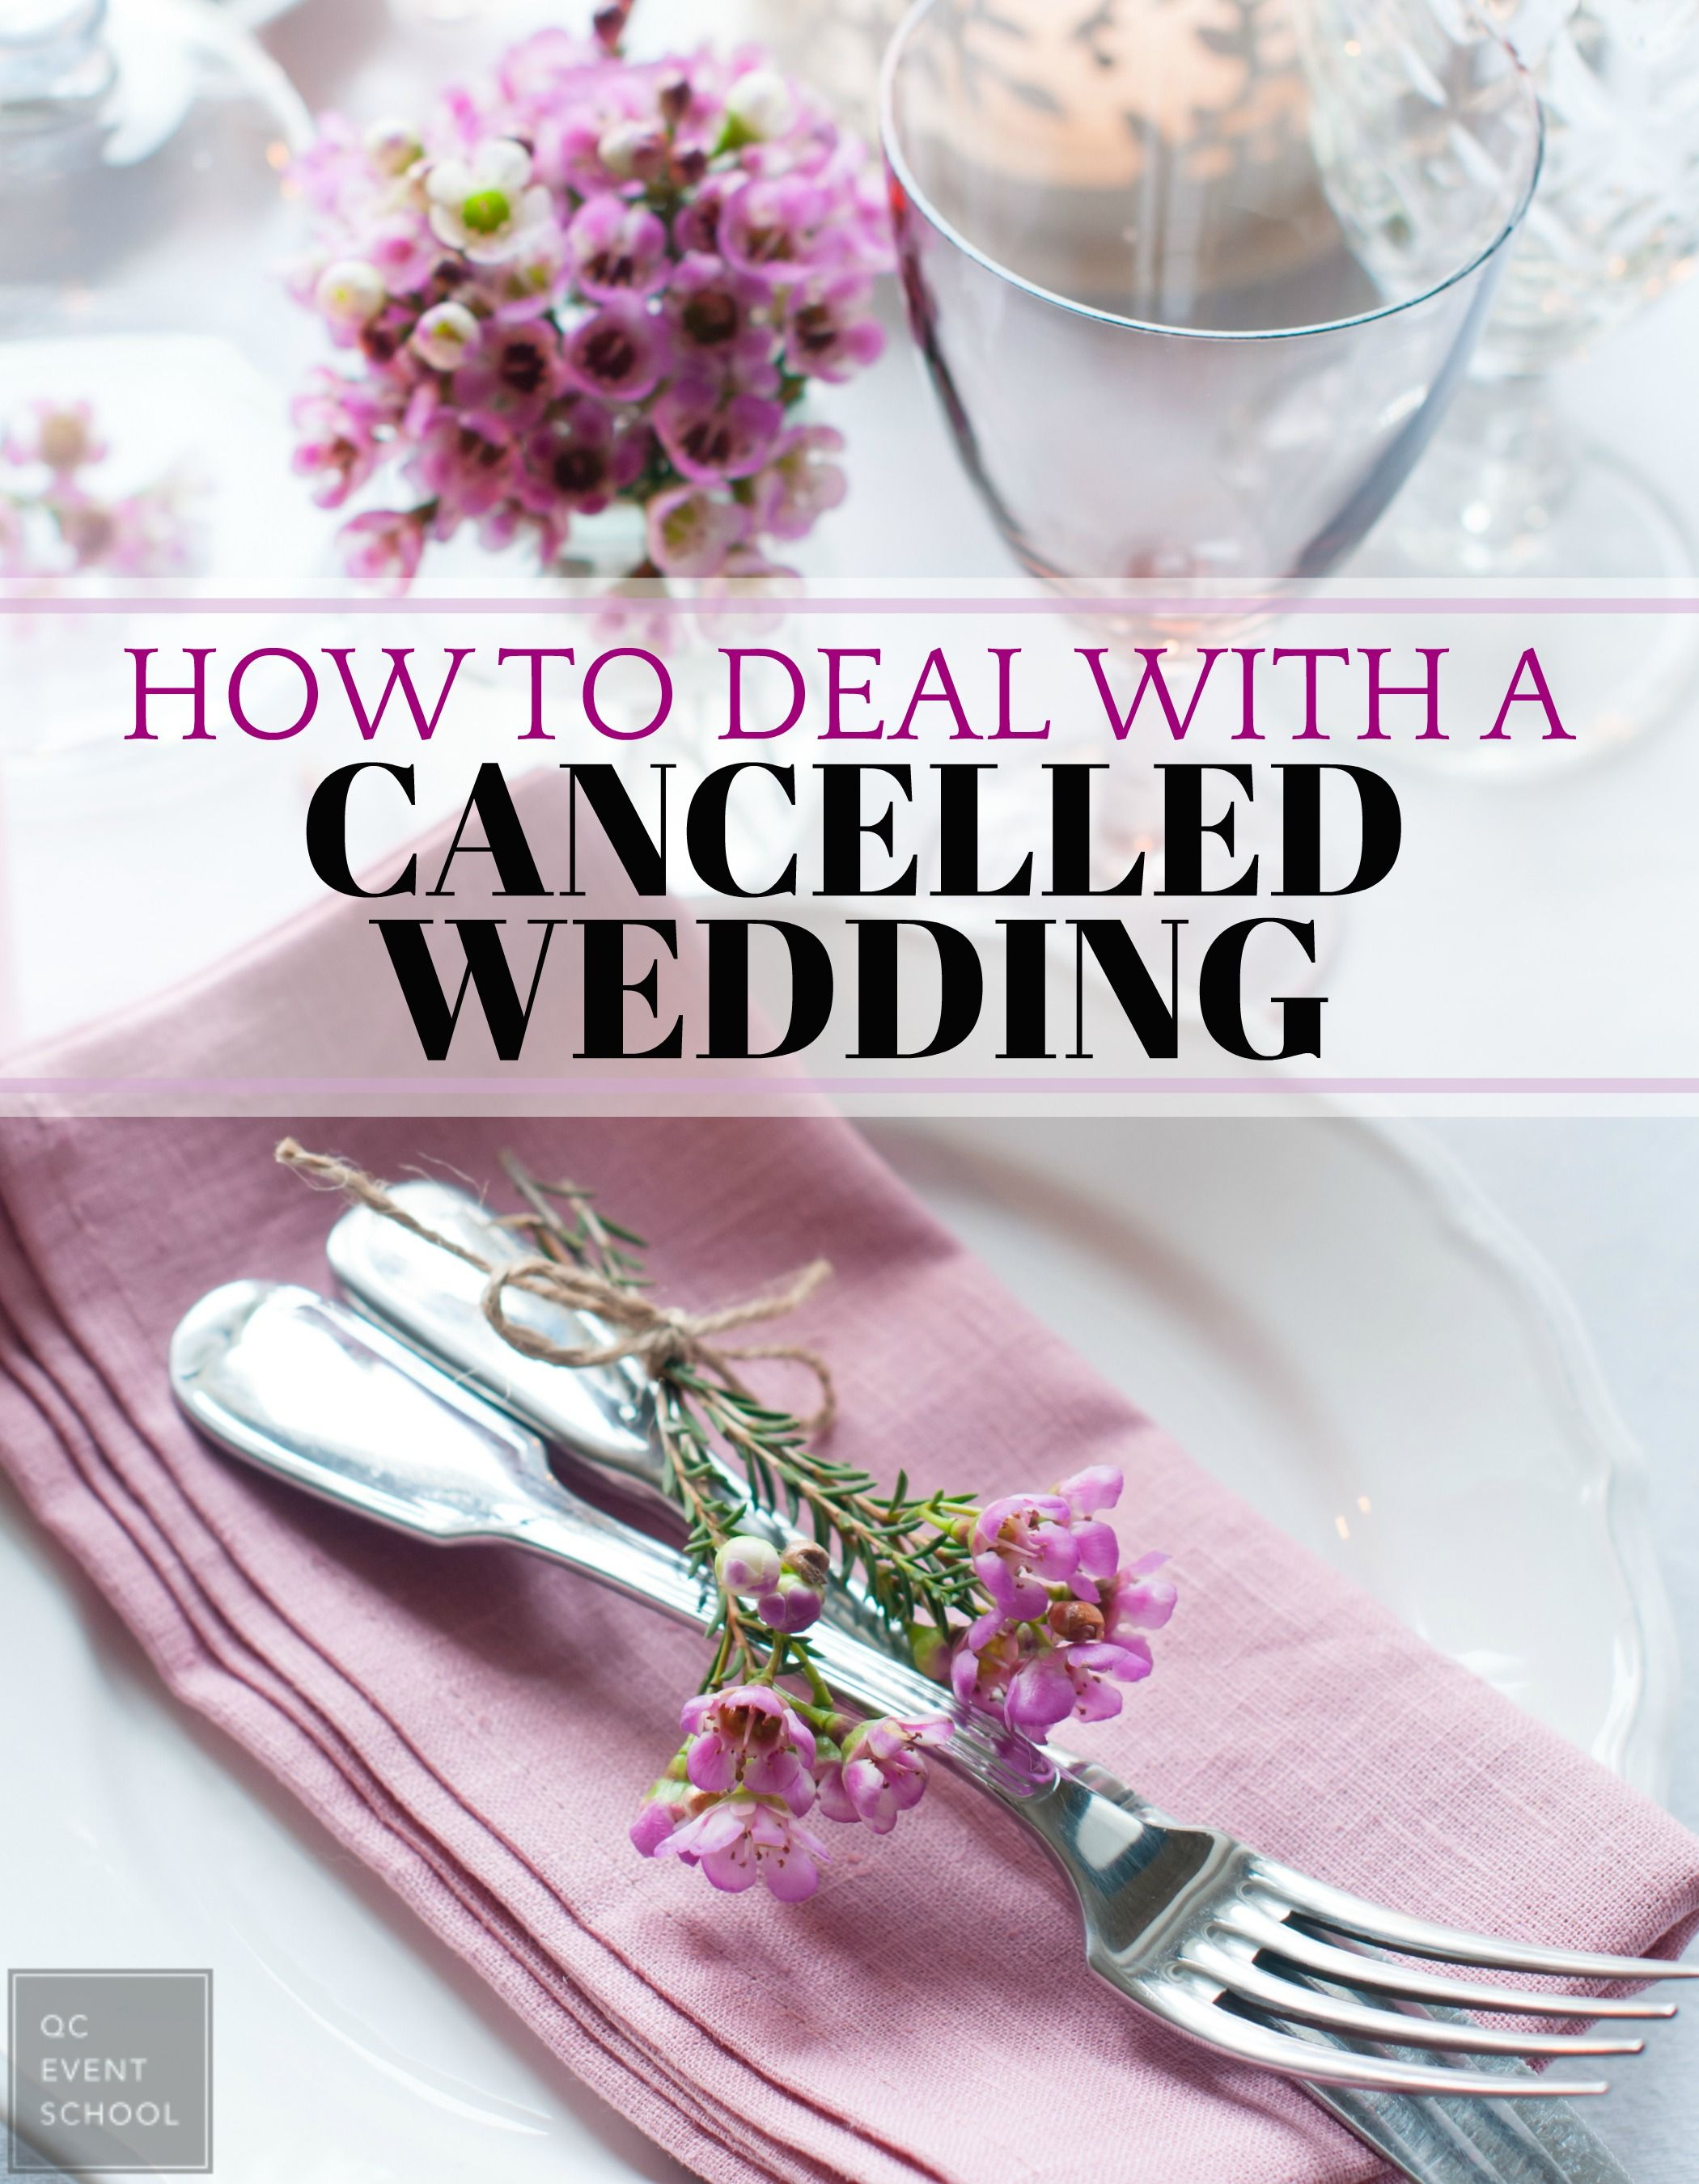 Find Out How To Handle A Cancelled Wedding As Planner With Our Complete Guide S Qcsavesthedate